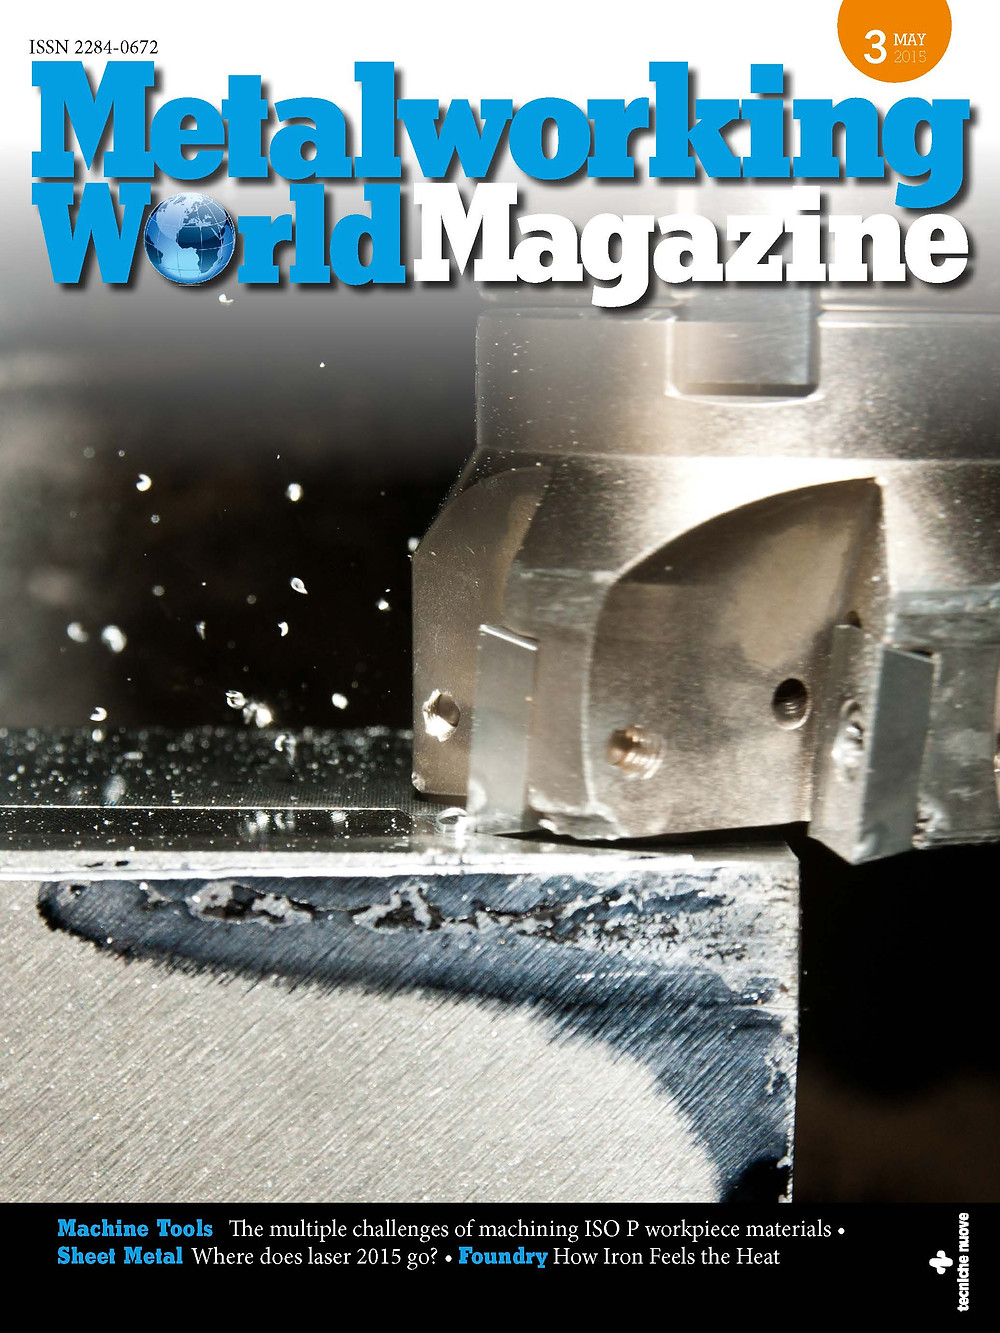 Metalworking World MAG - May 15.jpg